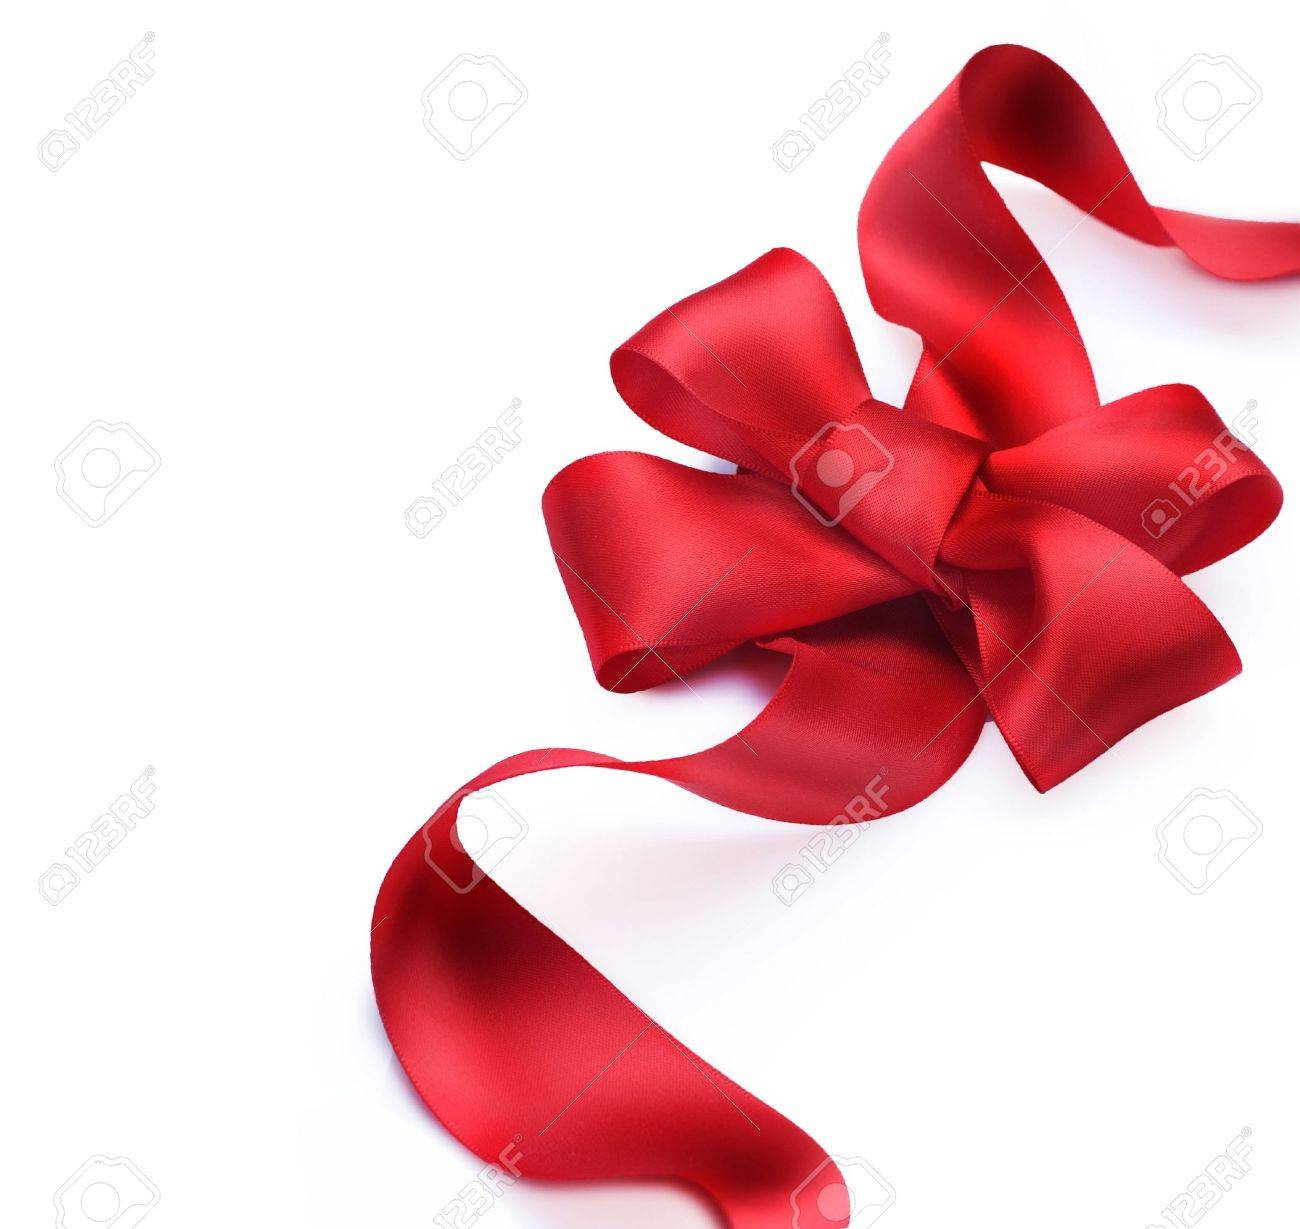 Red satin gift bow. Ribbon. Isolated on white Stock Photo - 9358002